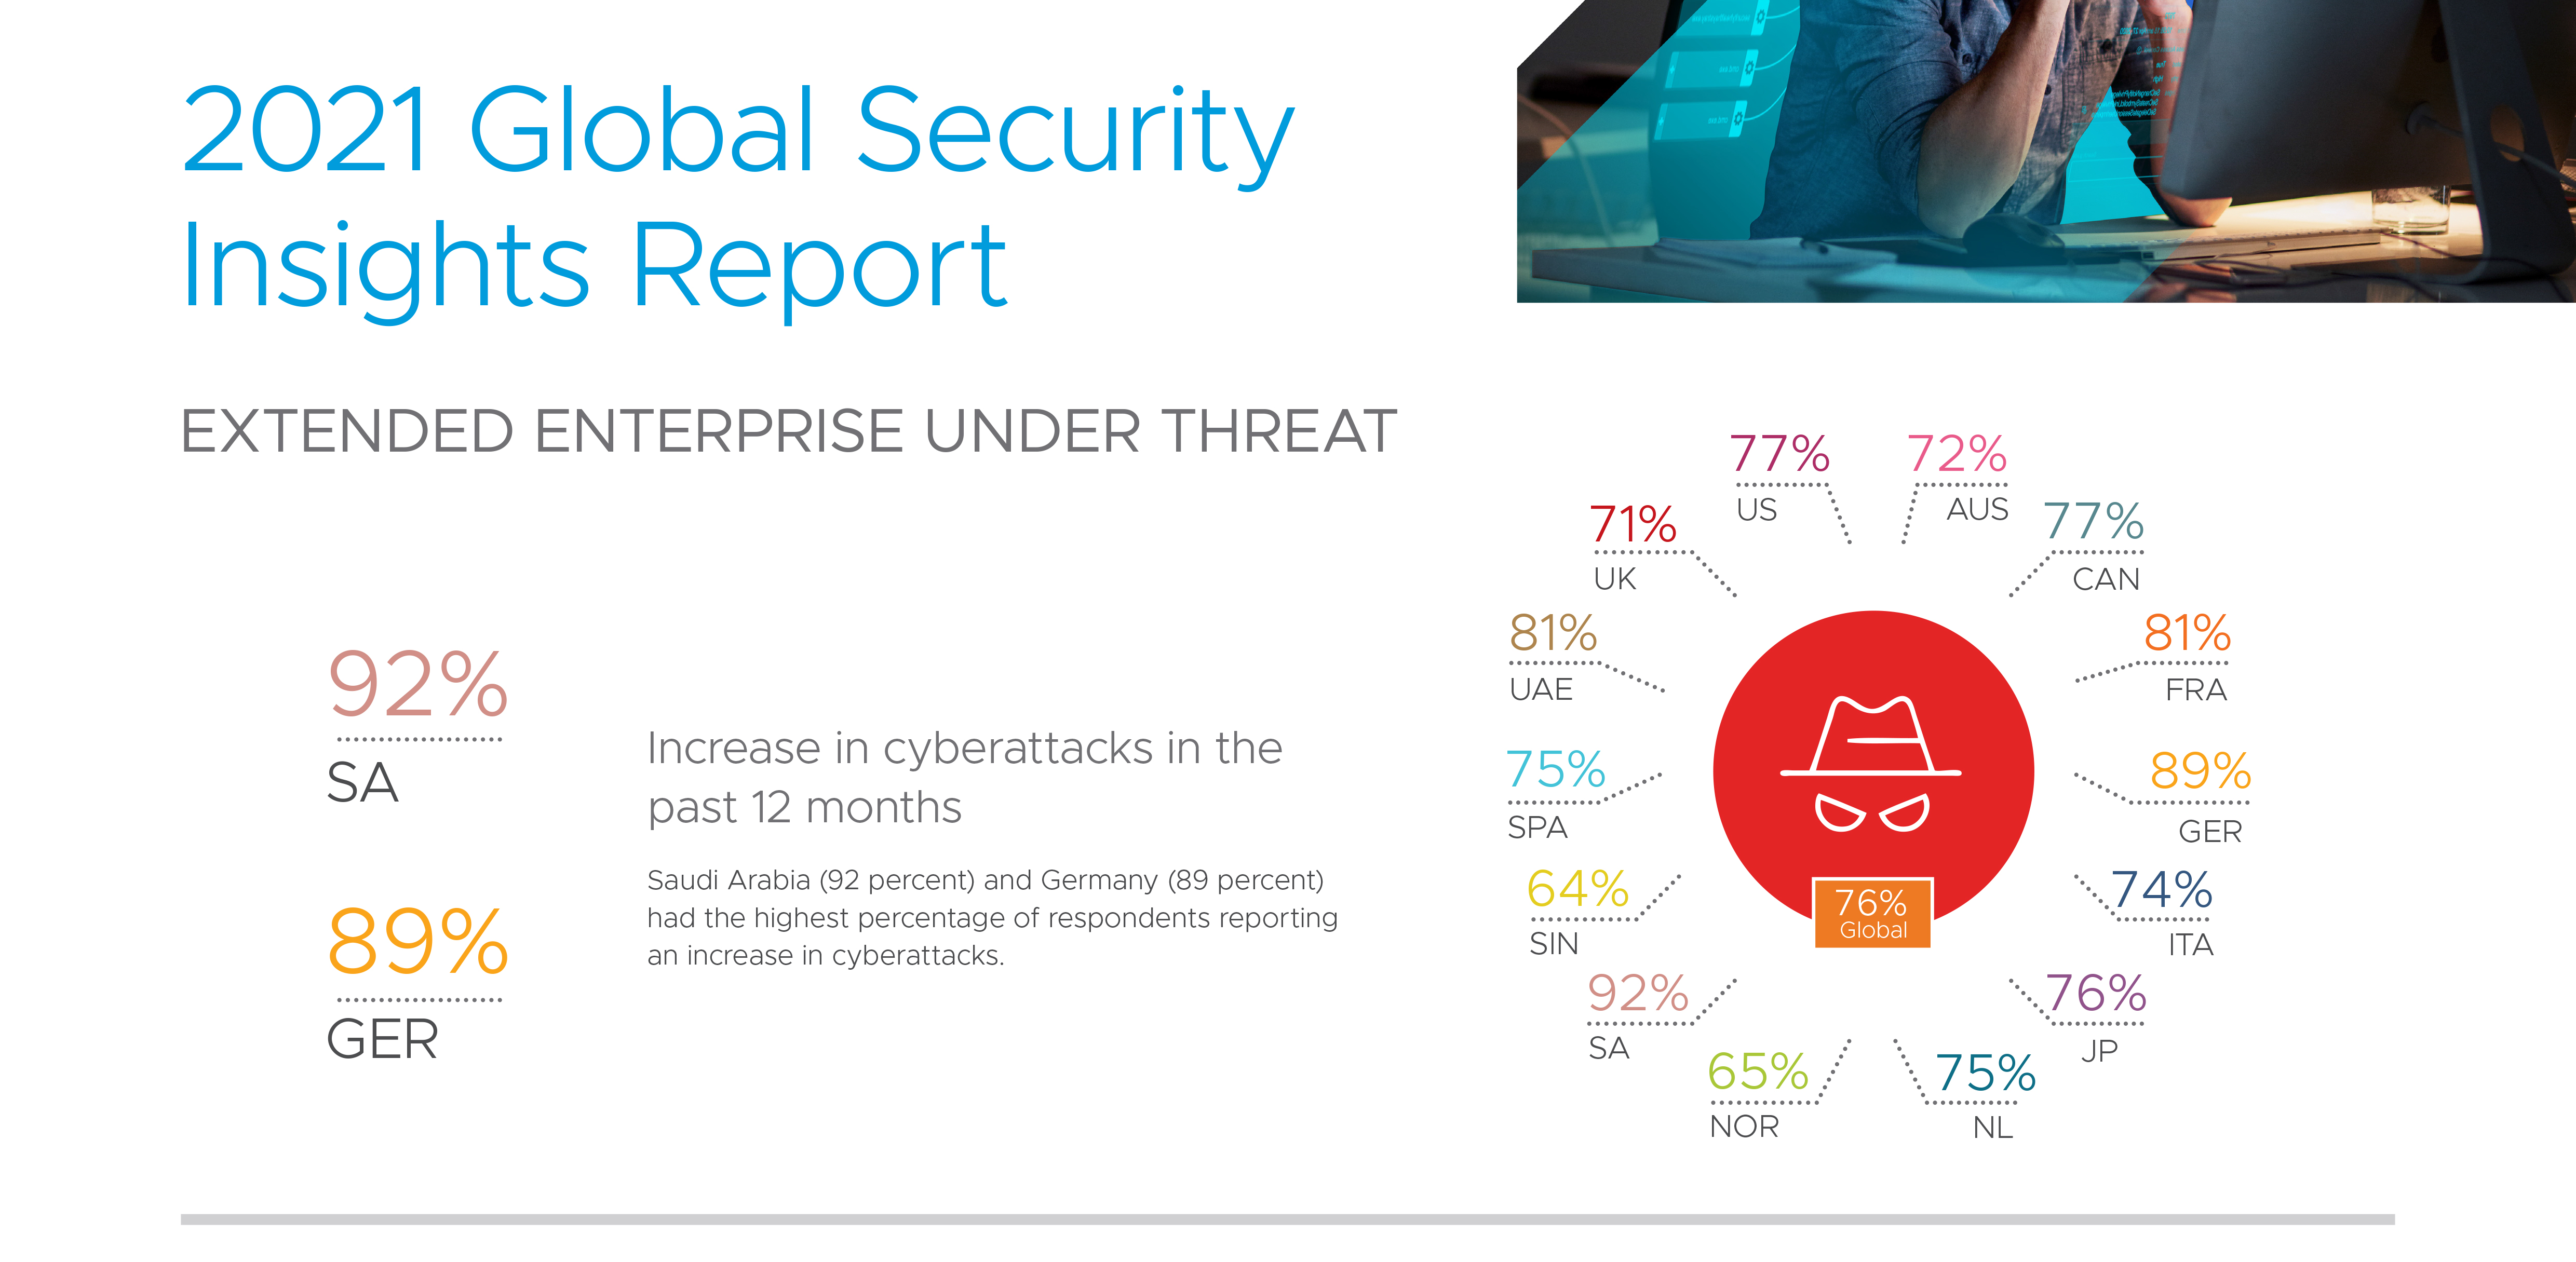 Global security insights 2021